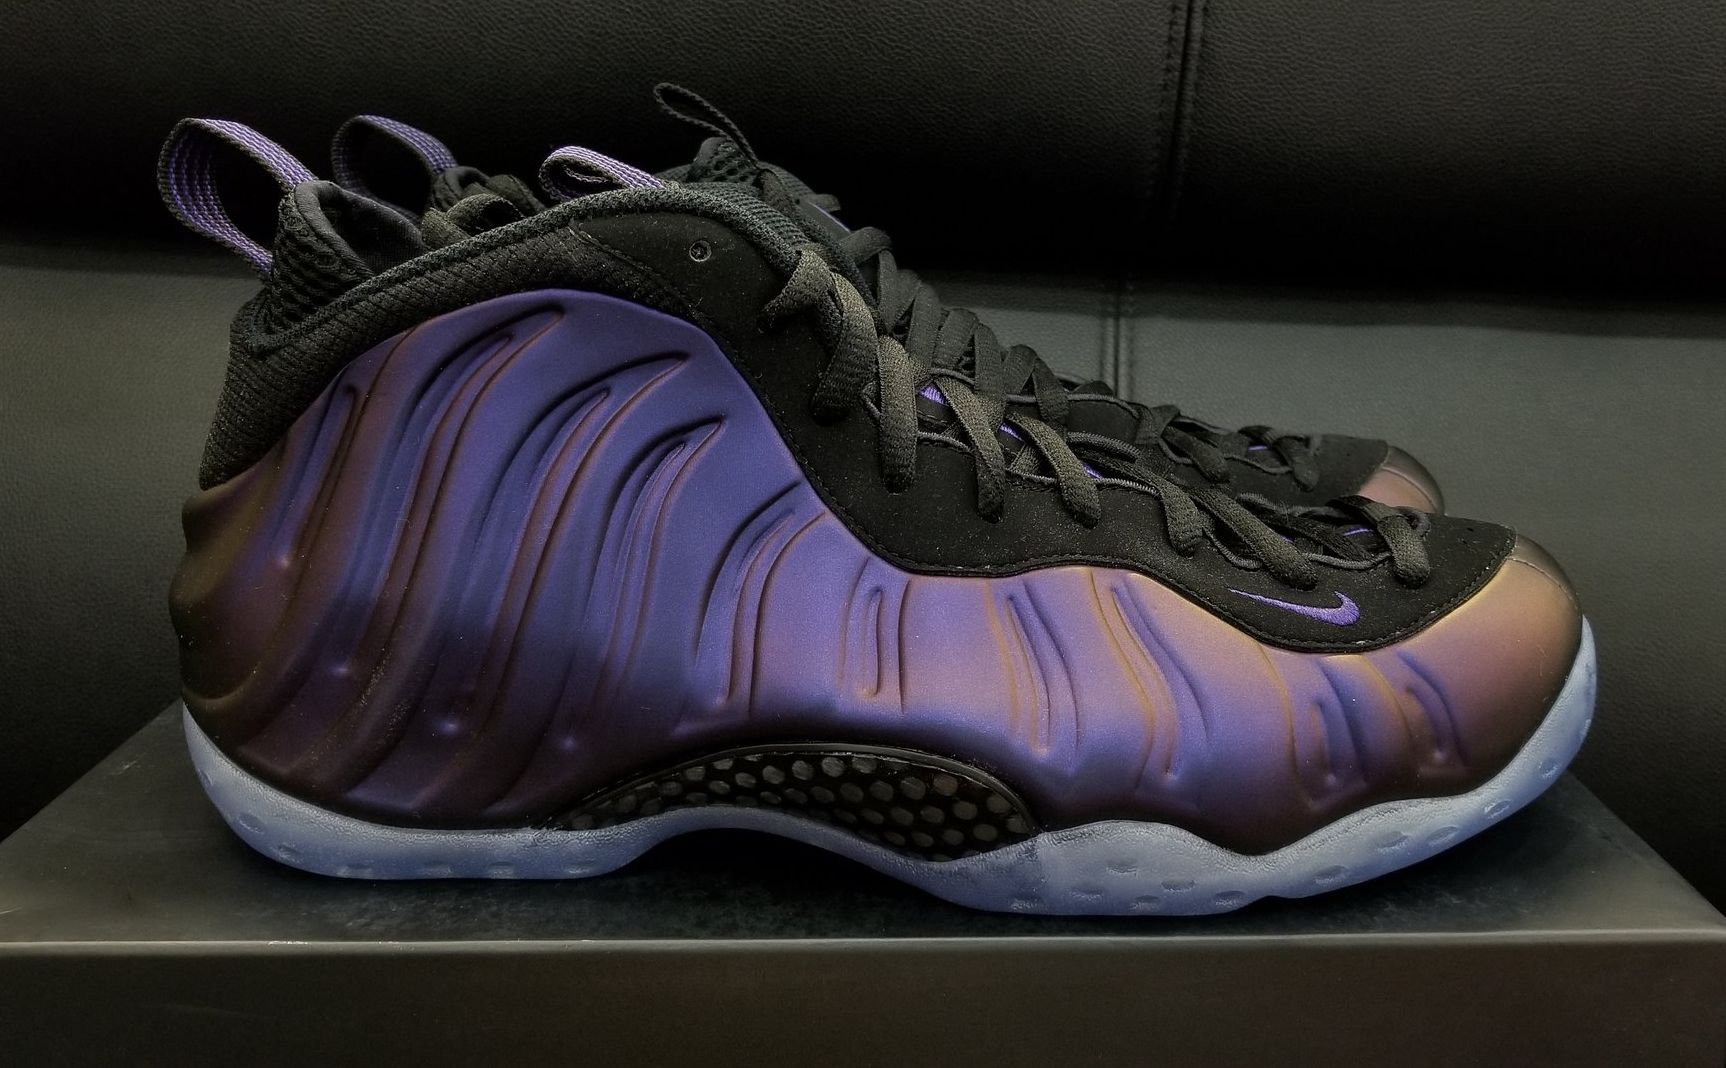 nike eggplant foamposite stephen curry shies